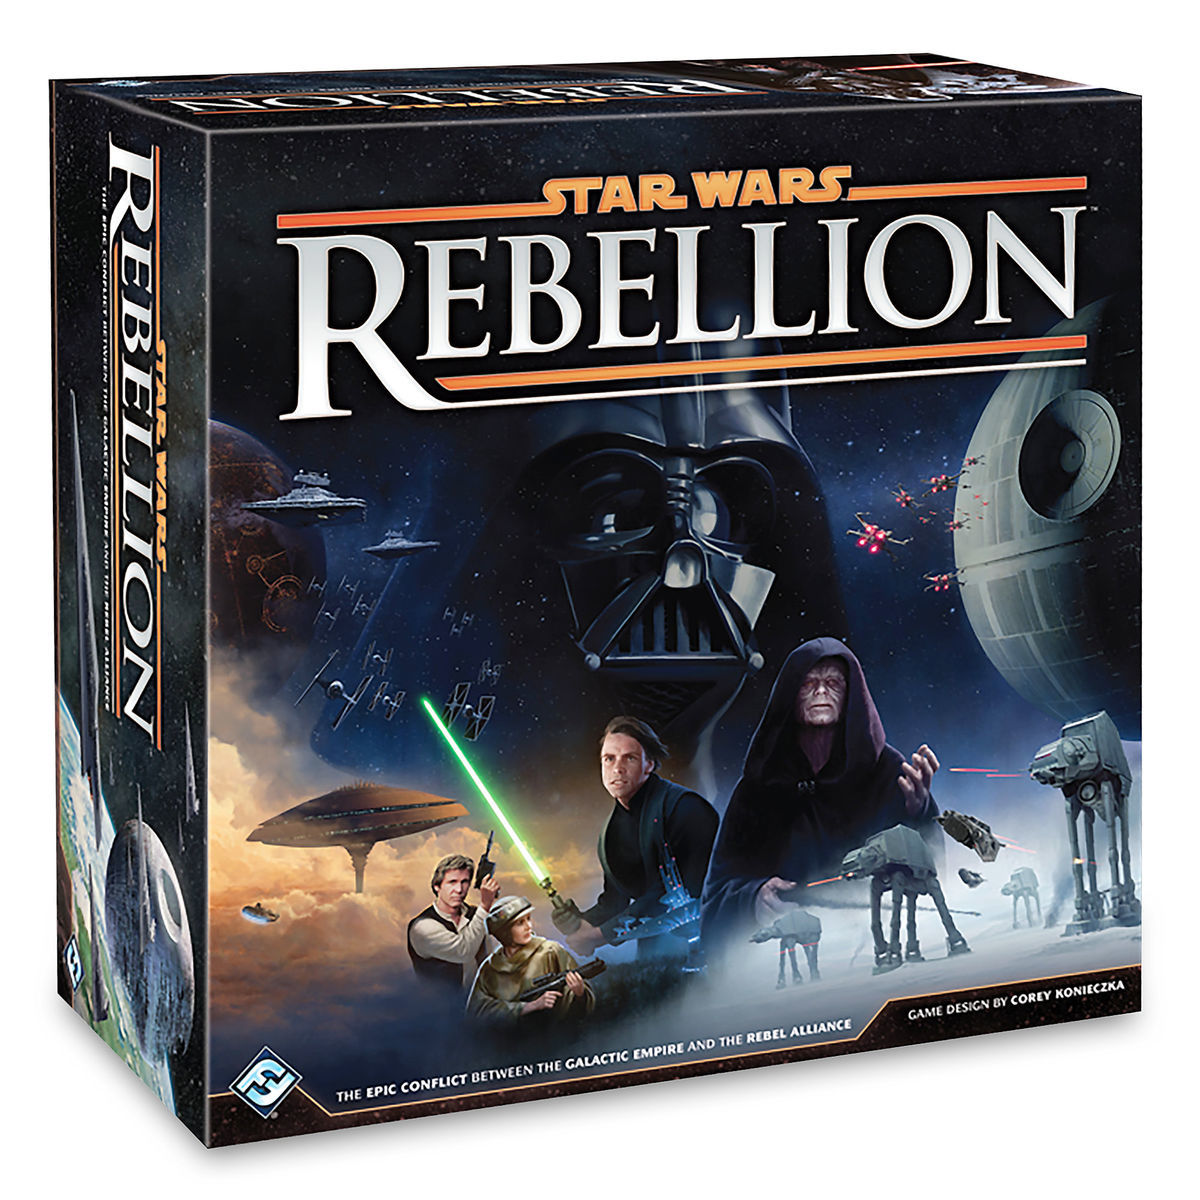 Star Wars rebélion